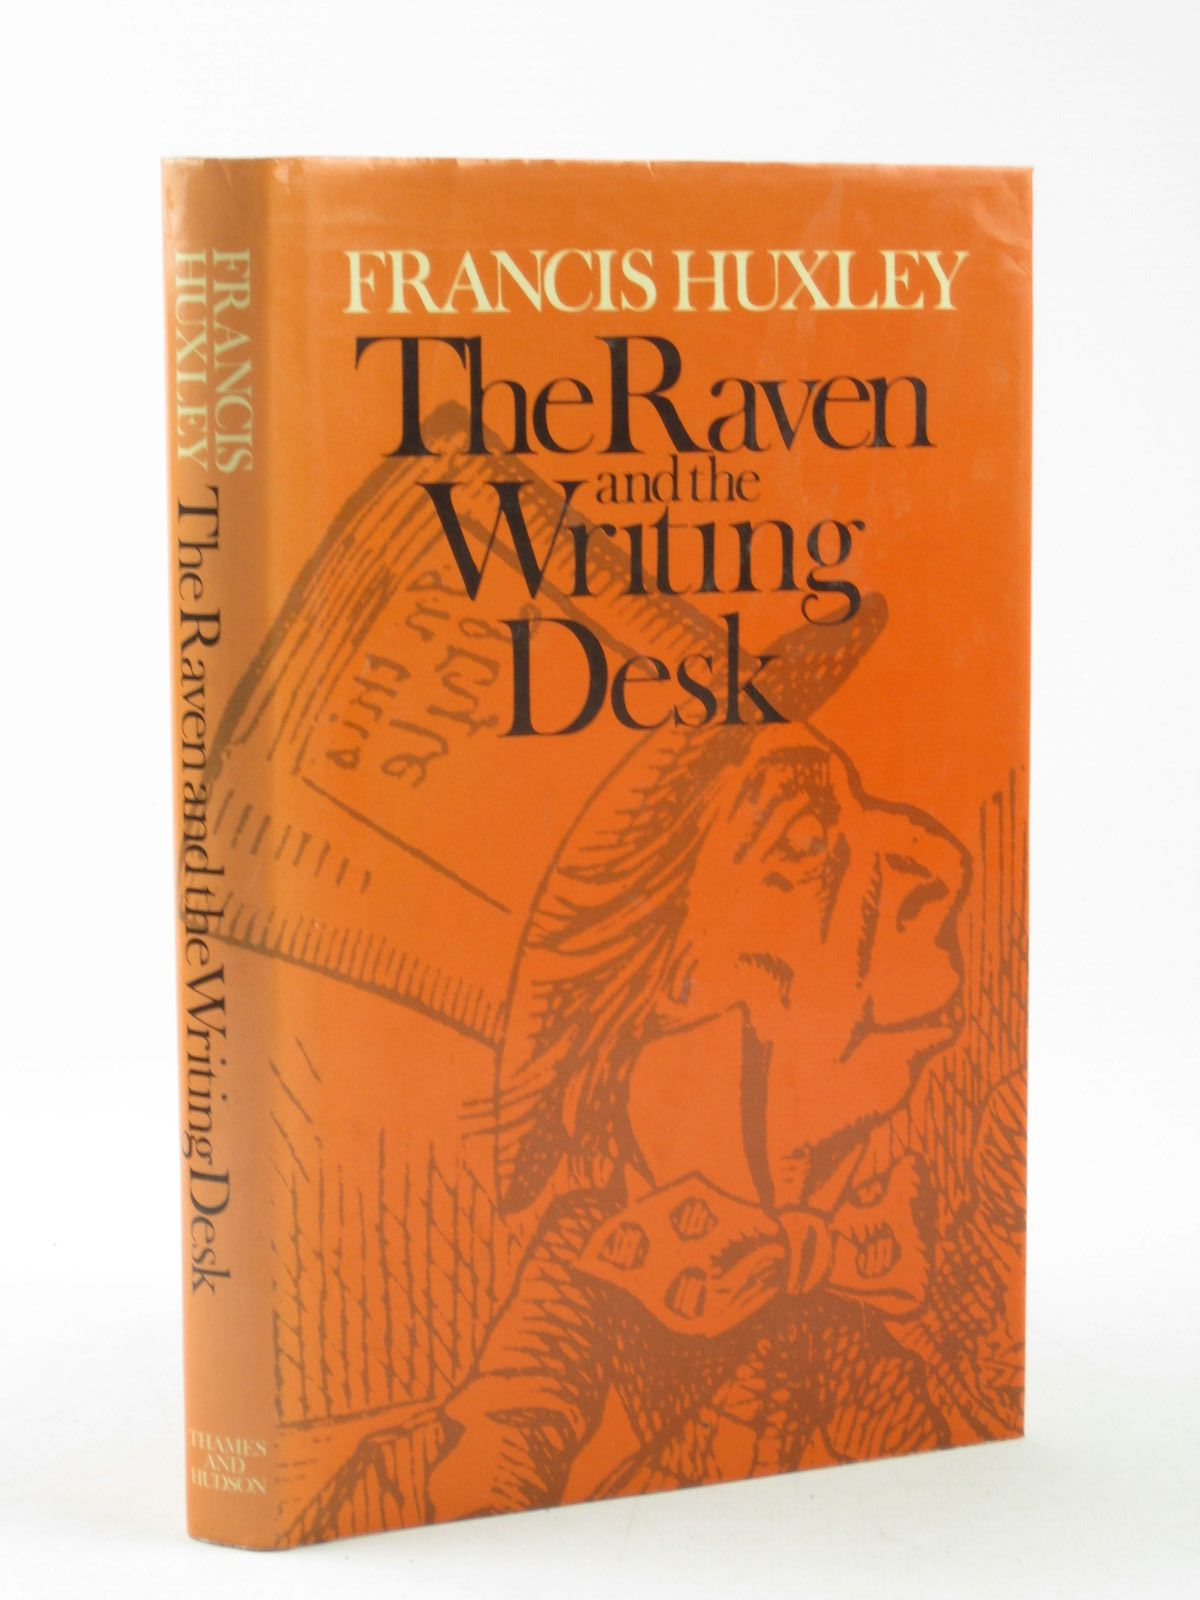 Photo of THE RAVEN AND THE WRITING DESK written by Carroll, Lewis Huxley, Francis published by Thames and Hudson (STOCK CODE: 1311722)  for sale by Stella & Rose's Books